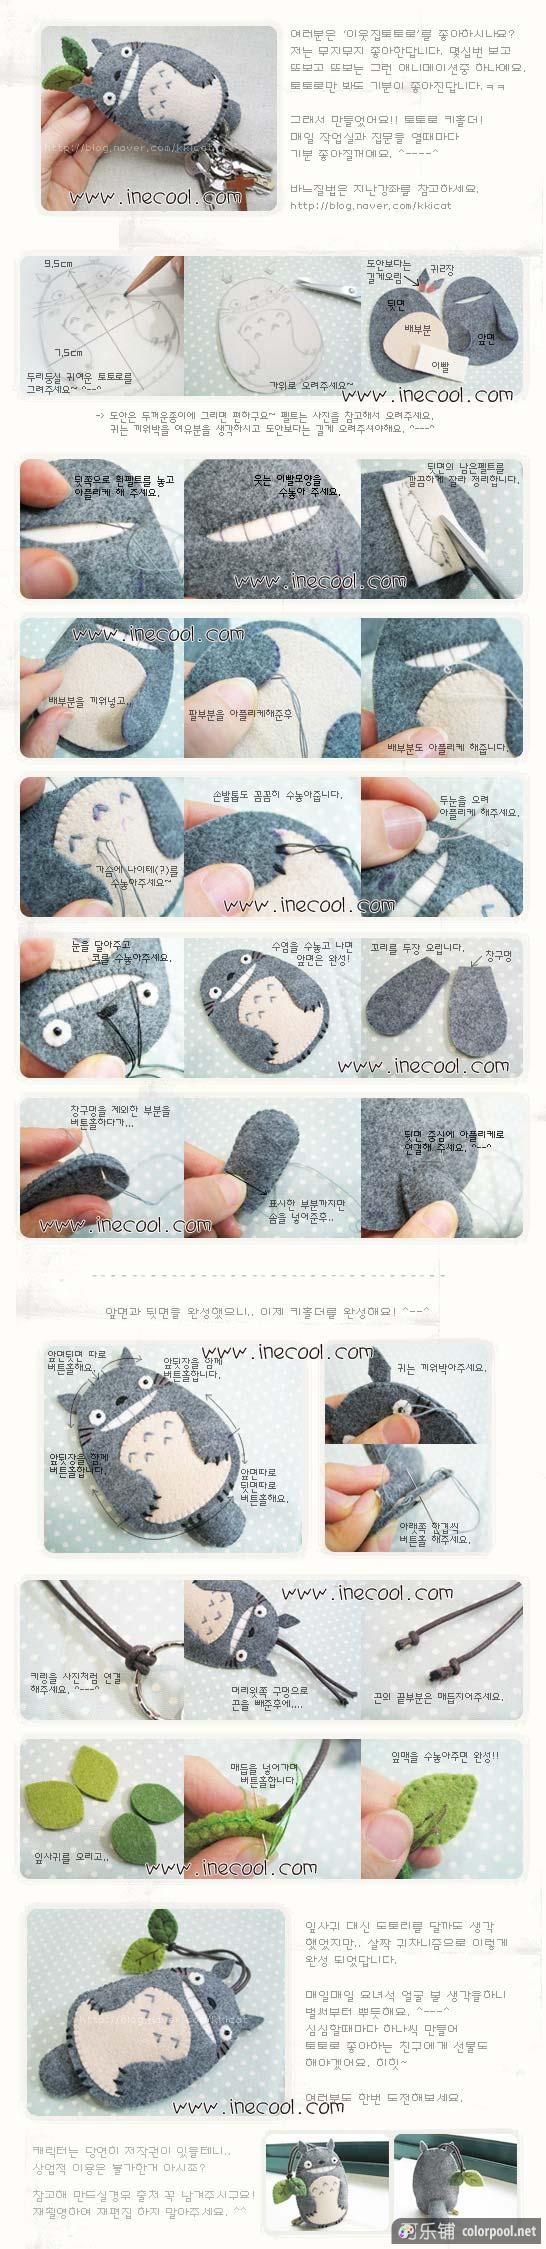 Non-woven chinchillas.   <---- CHINCHILLAS!?!? ROFL!!! That is Totoro you poor deprived child!